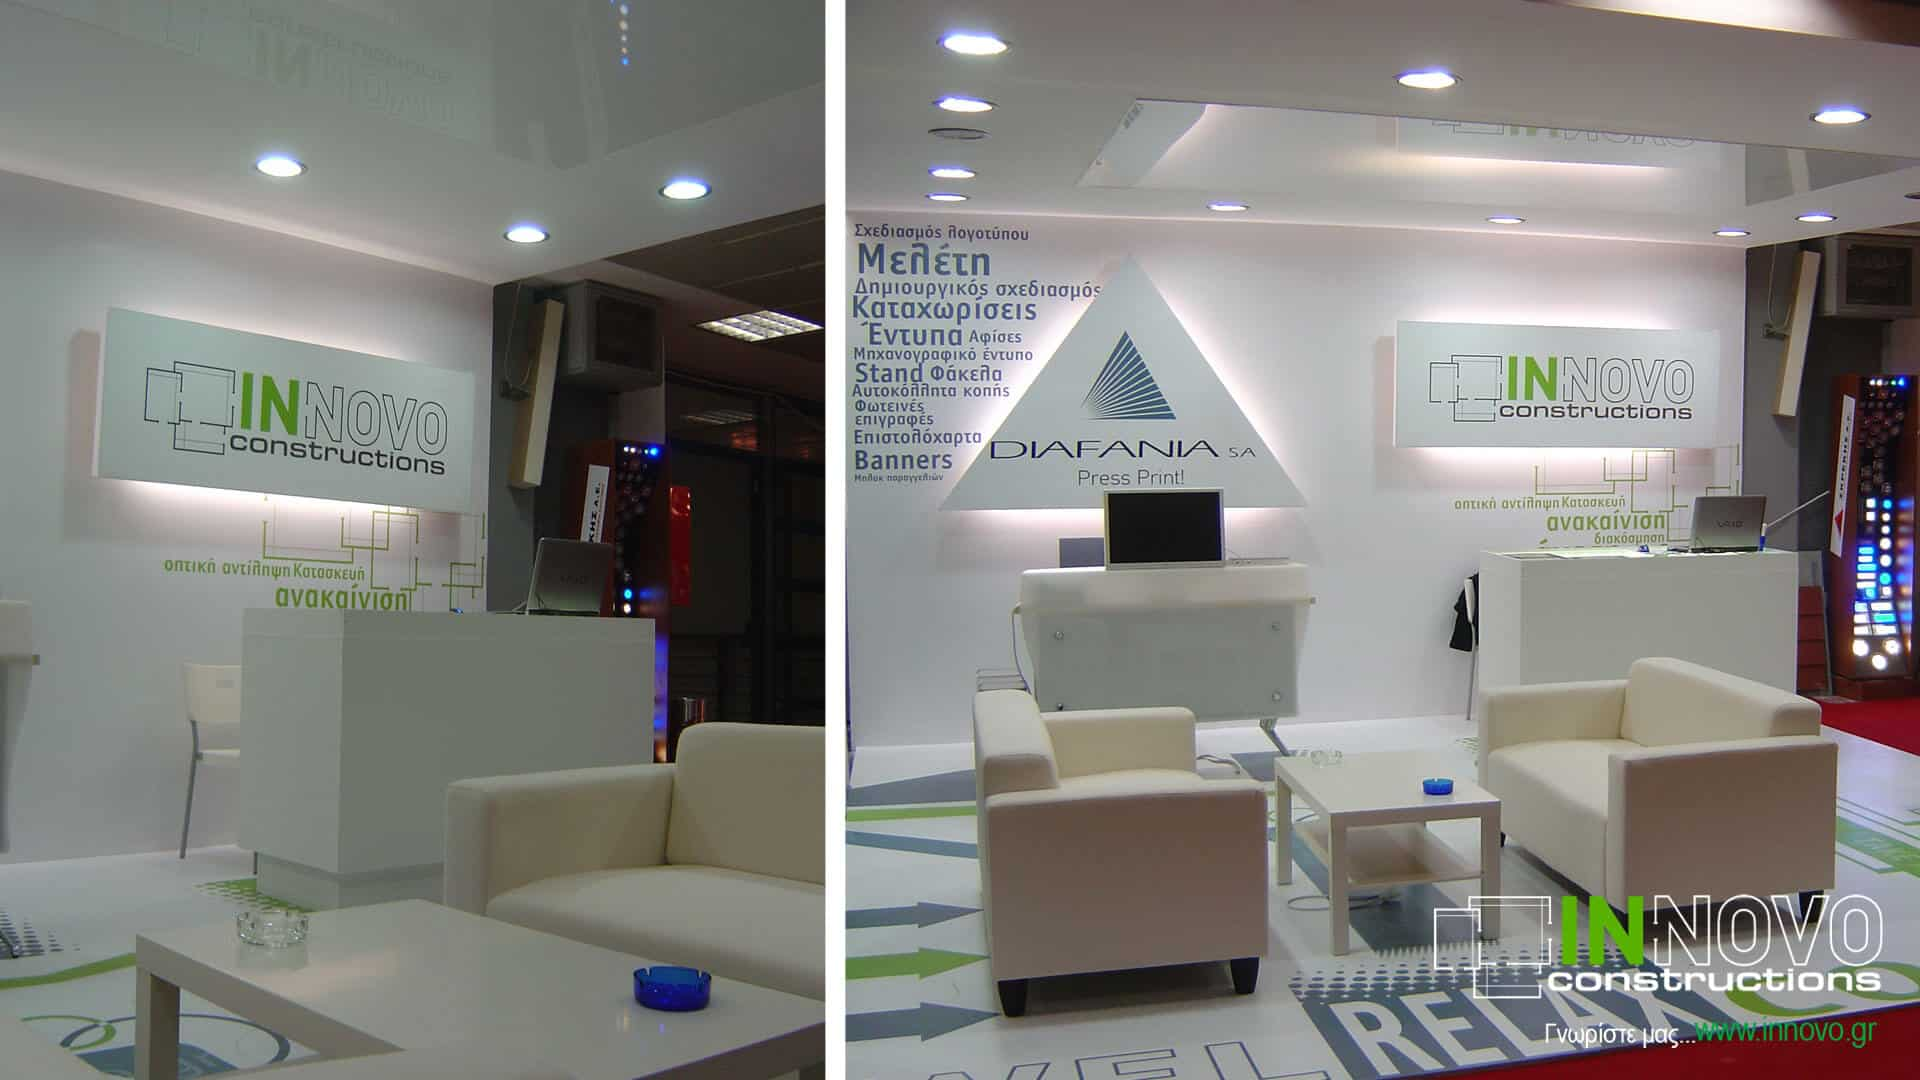 kataskevi-peripterou-exhibition-stand-construction-periptero-mas-optika-2008-6